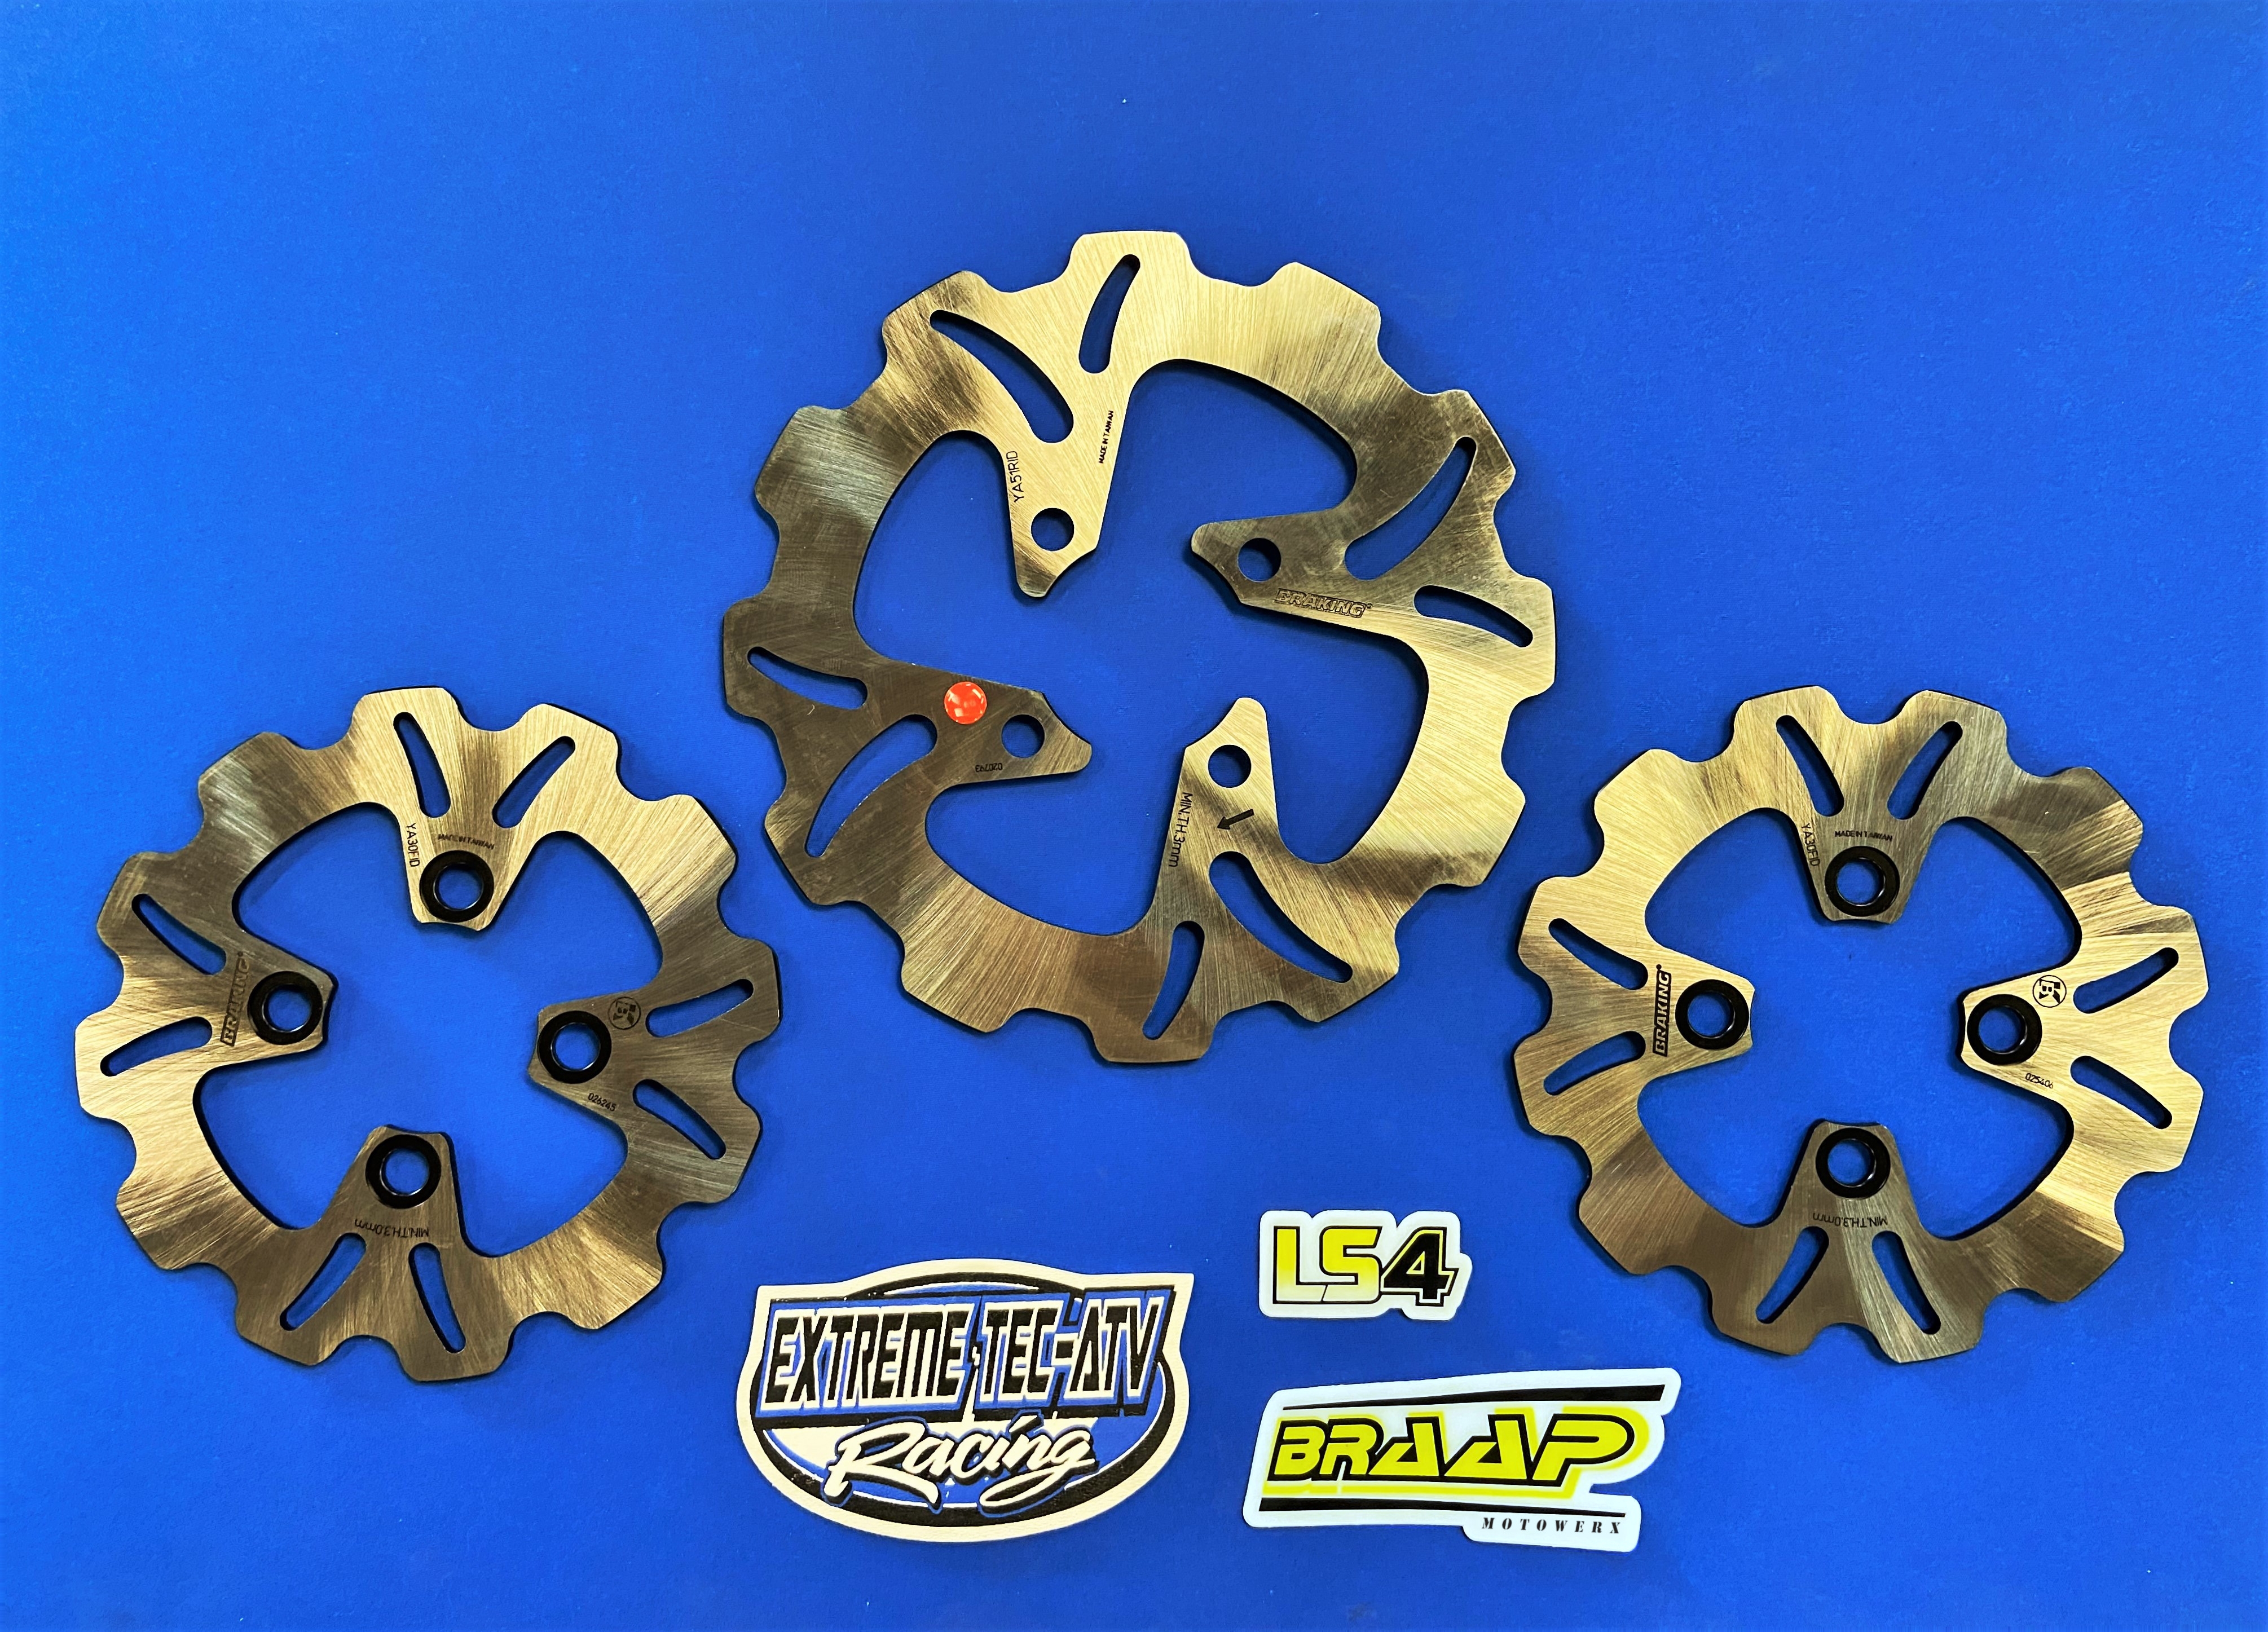 YFZ450R/X YFZ450 Raptor 700 Race Brake Rotor Full Set